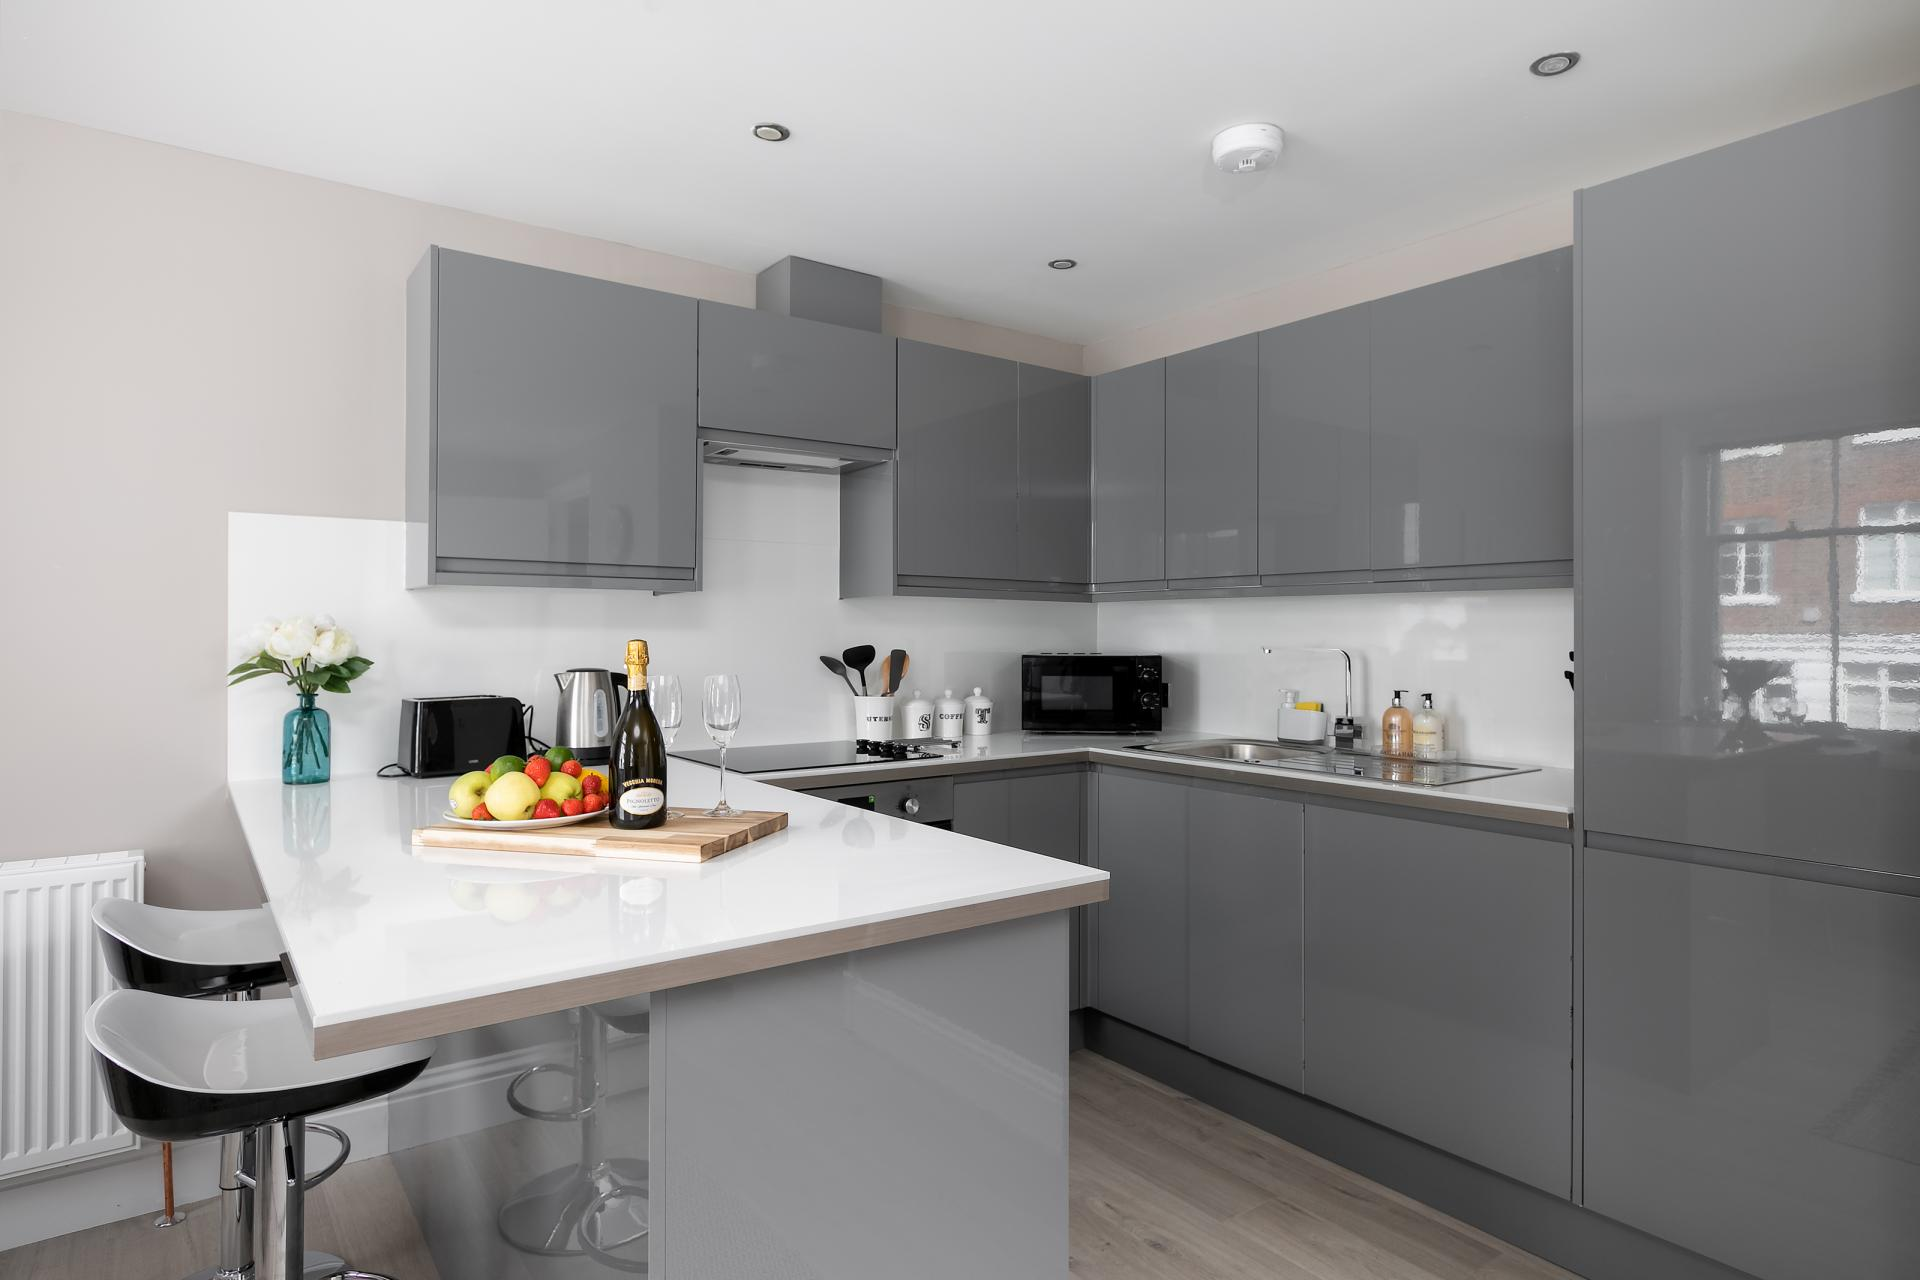 Kitchen at Western Road Apartments, Centre, Brighton - Citybase Apartments